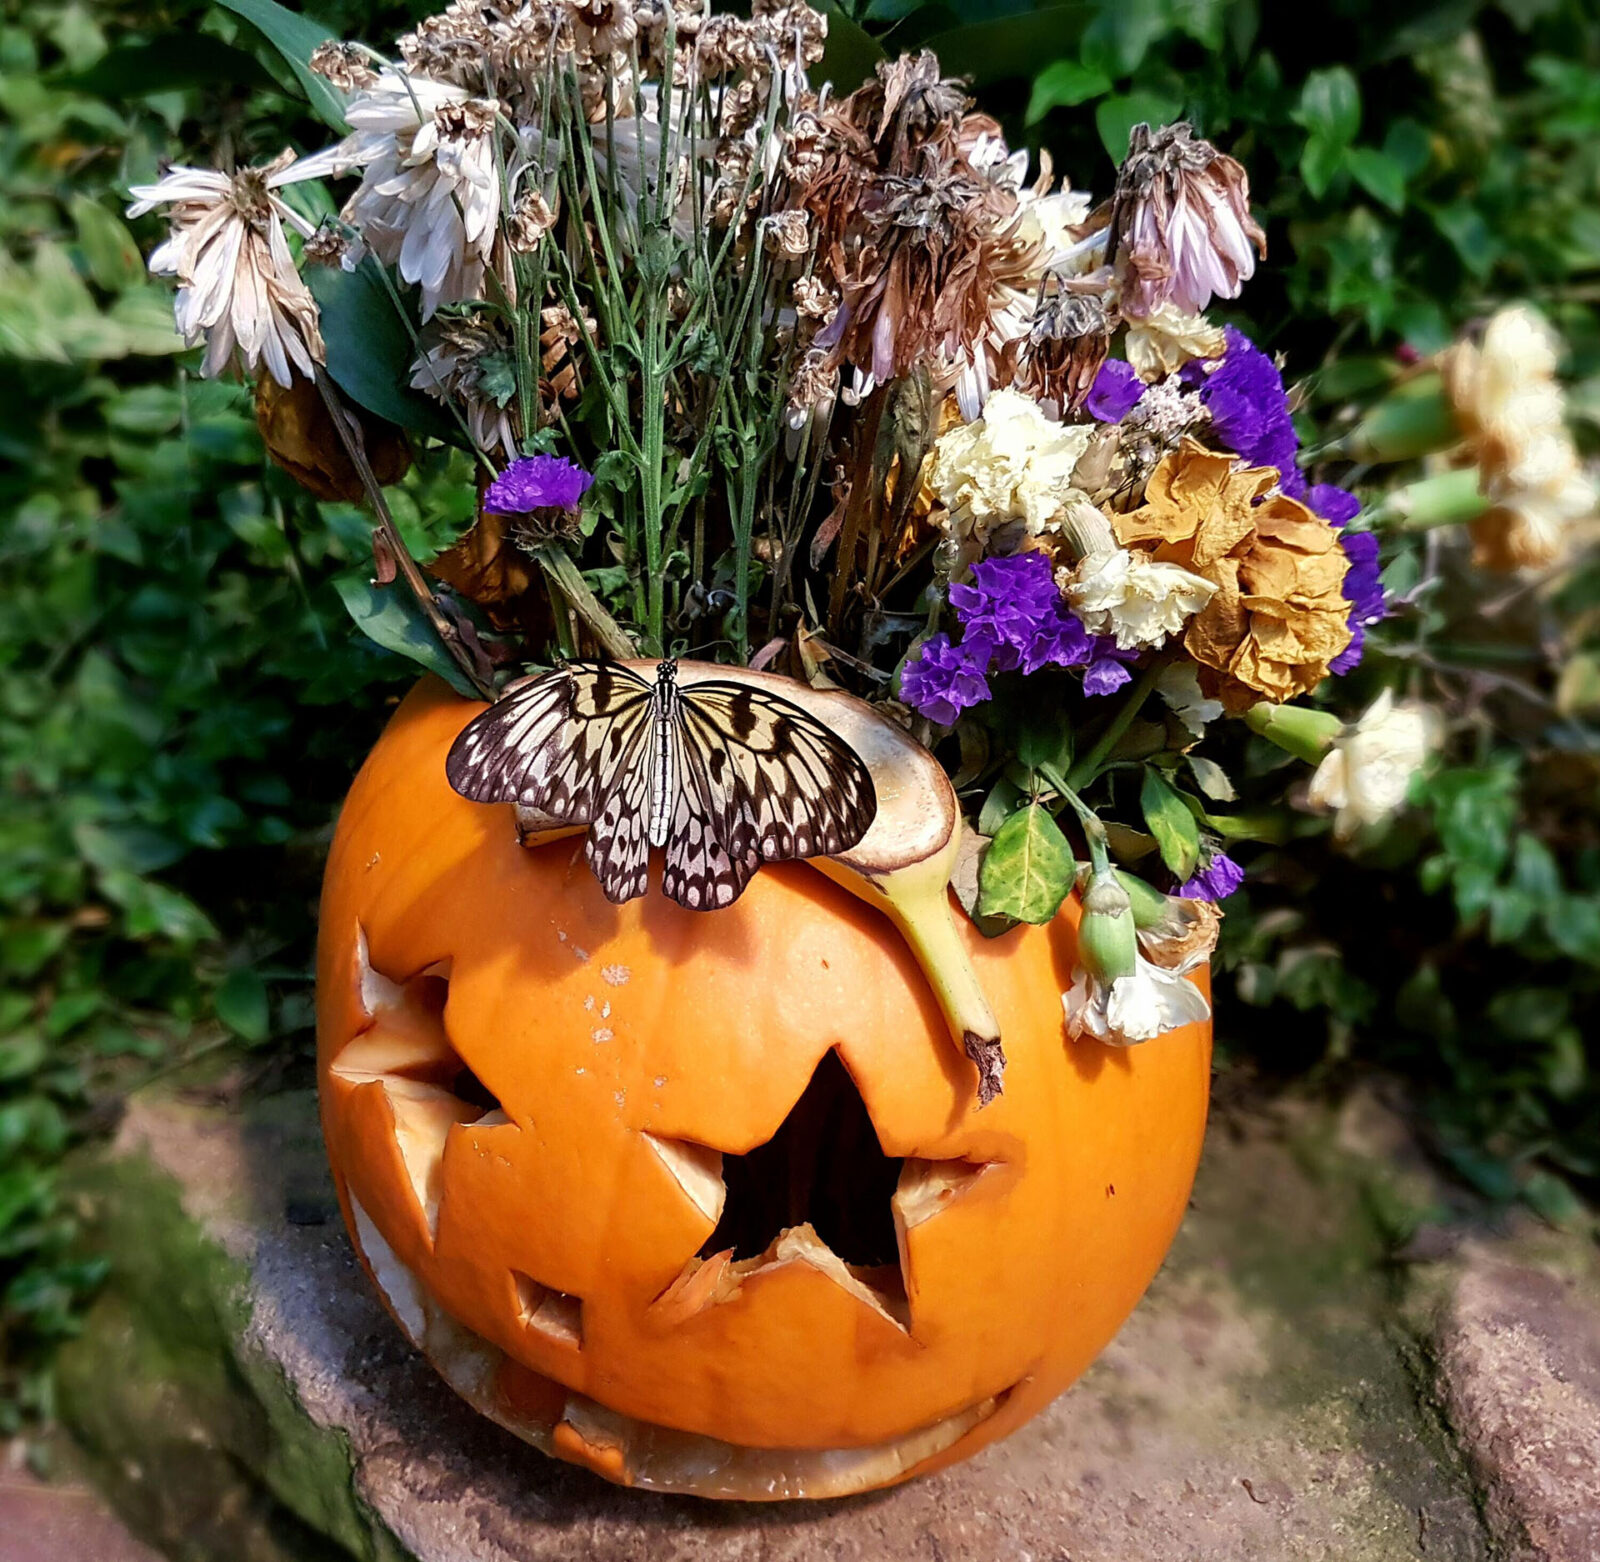 Enjoy a spooky half term at Stratford Butterfly Farm!